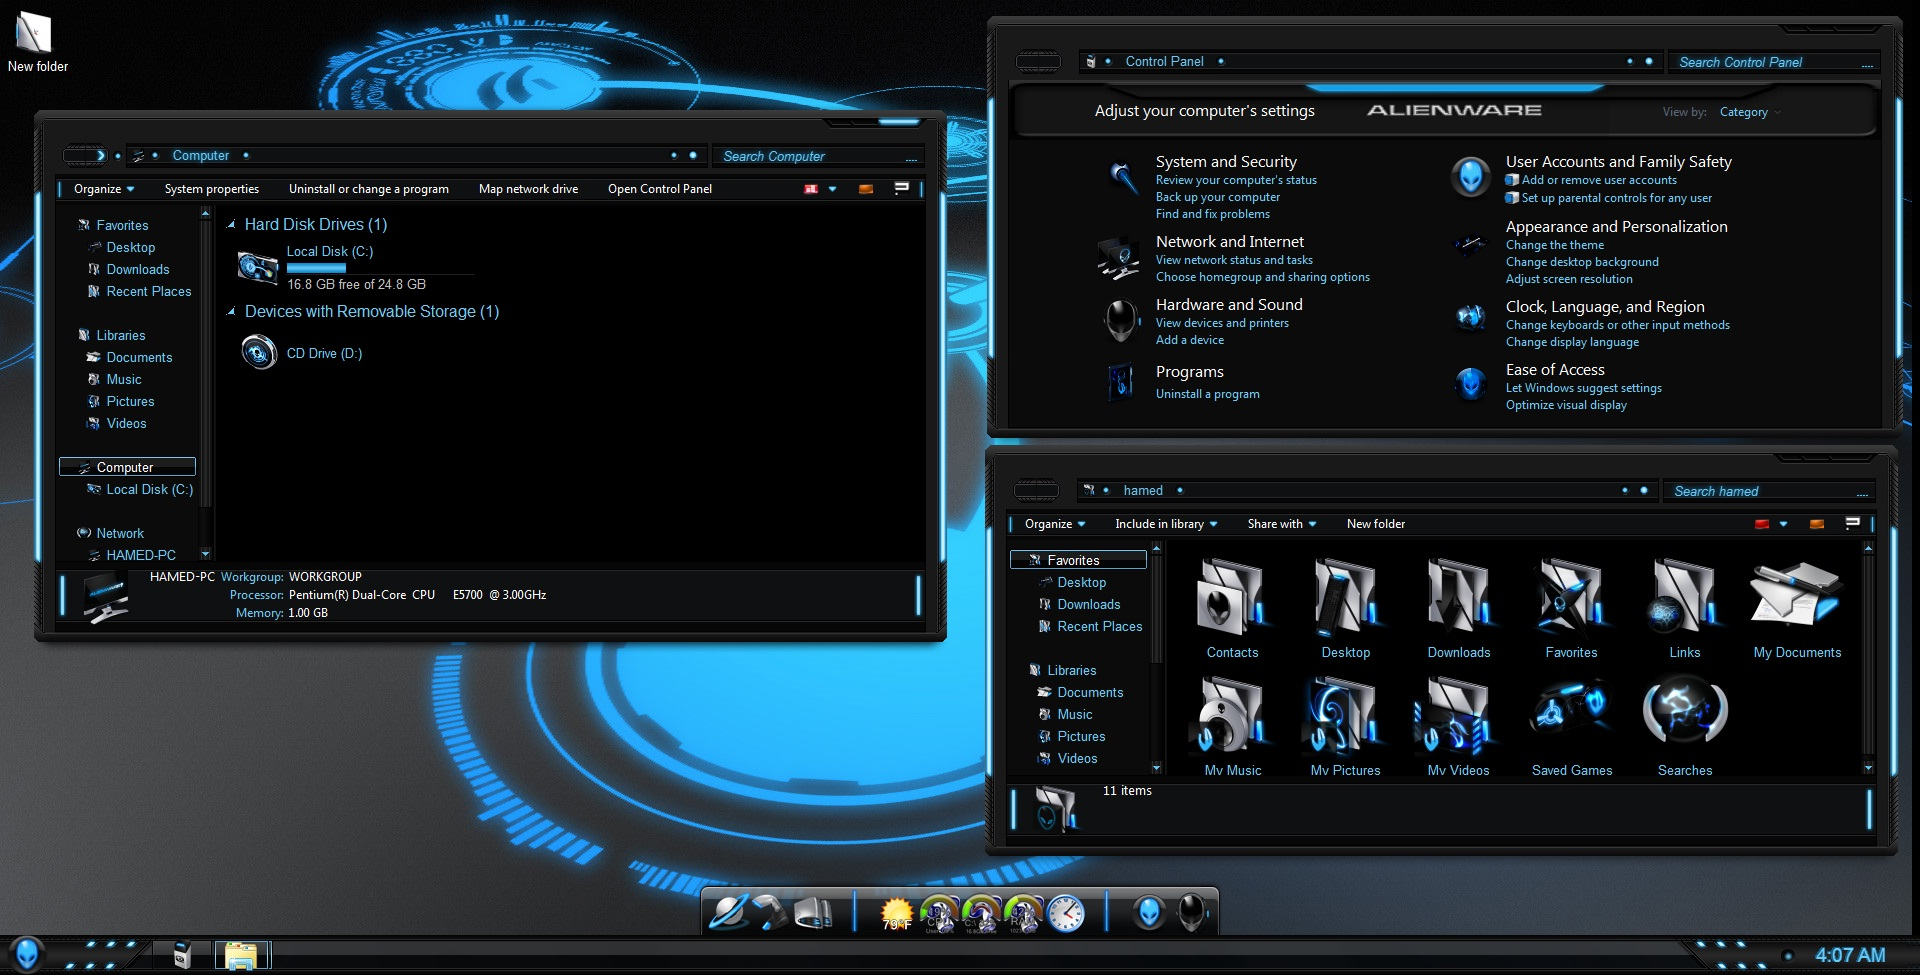 Download alienware skin pack 2. 0 free to make your windows 7.